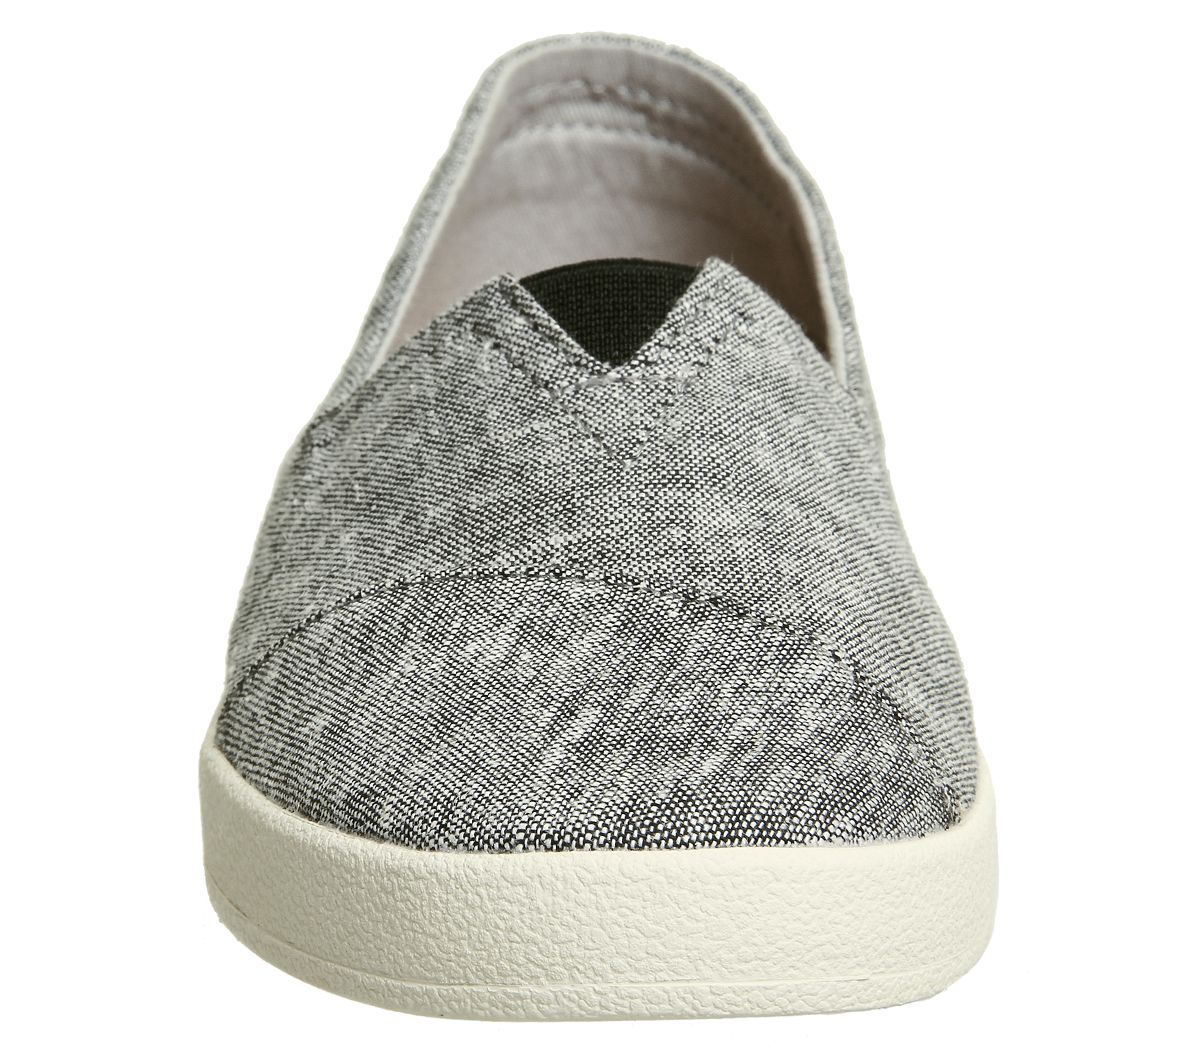 Womens-Toms-Avalon-Sneakers-Black-Slub-Chambray-Flats thumbnail 20